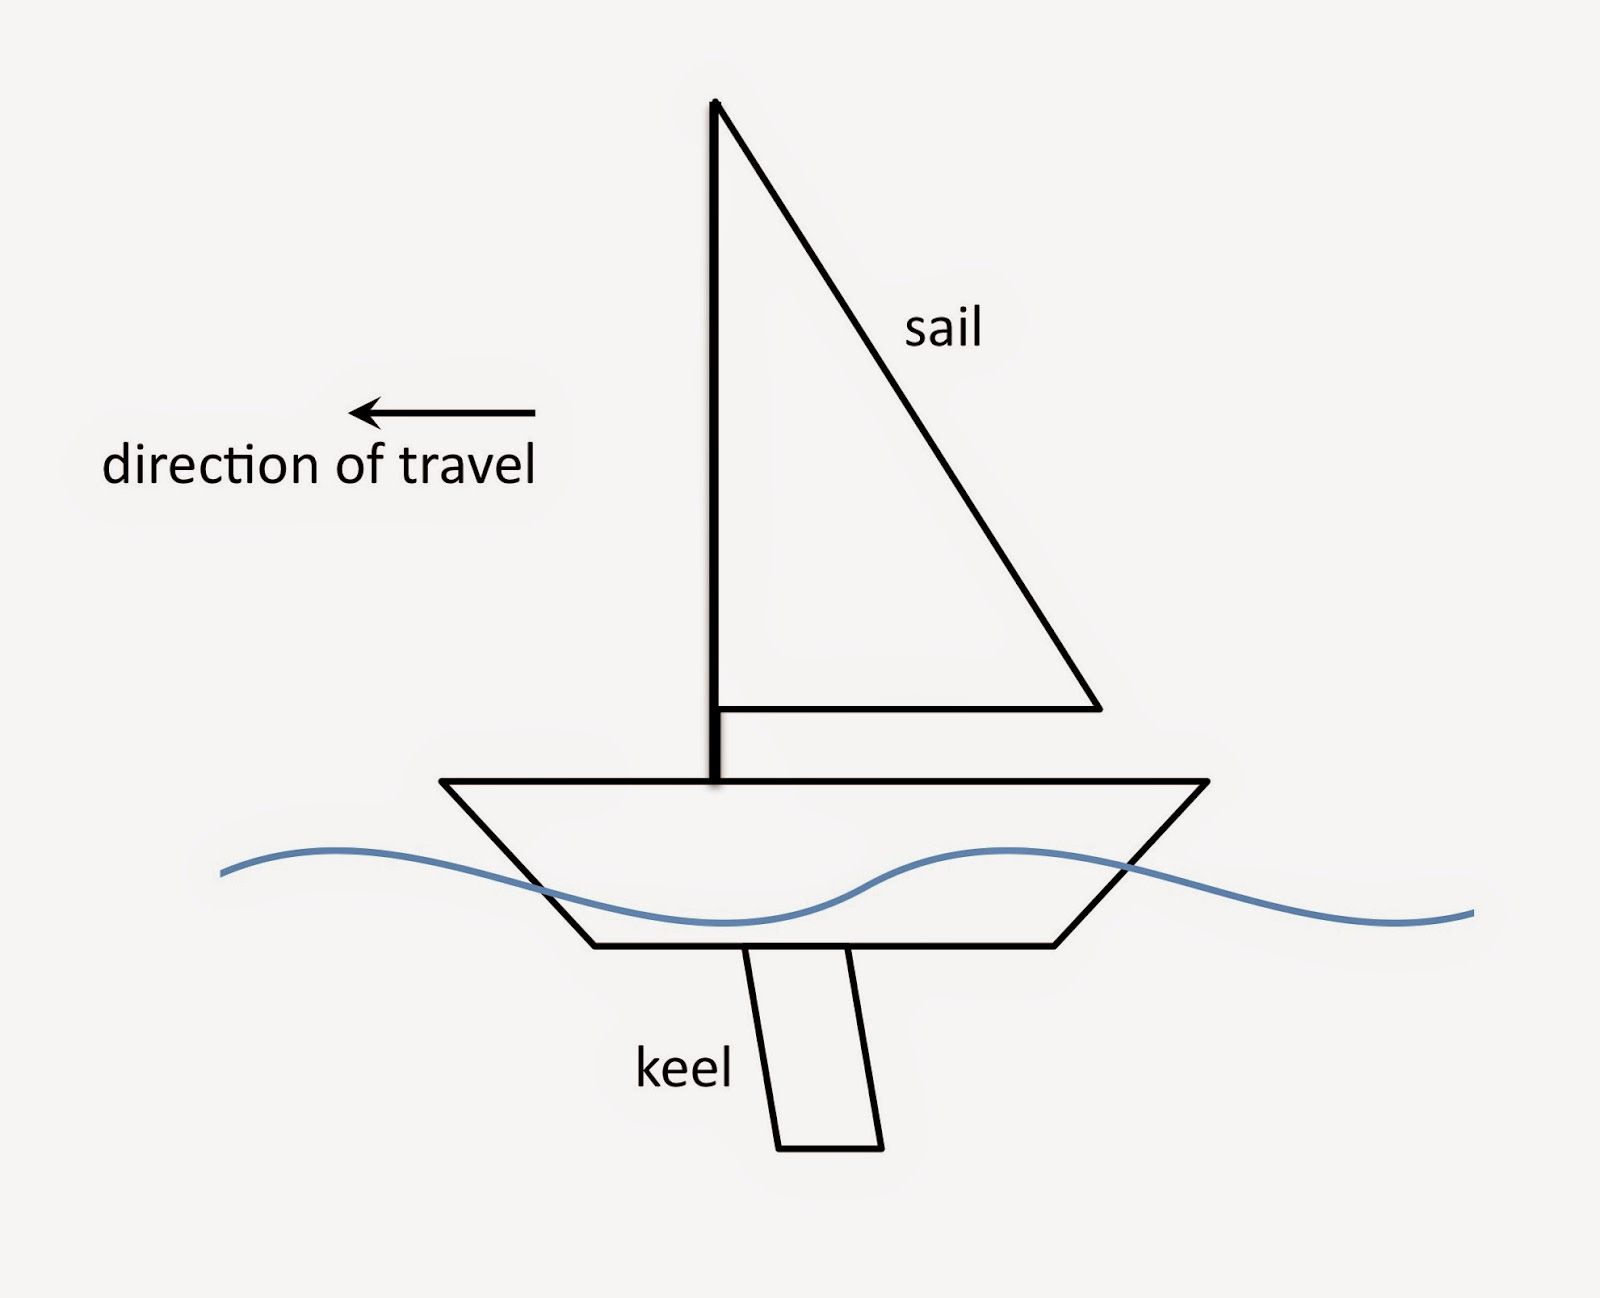 Physics buzz the physics of sailing how does a sailboat move upwind diagram credit tamela maciel pooptronica Images